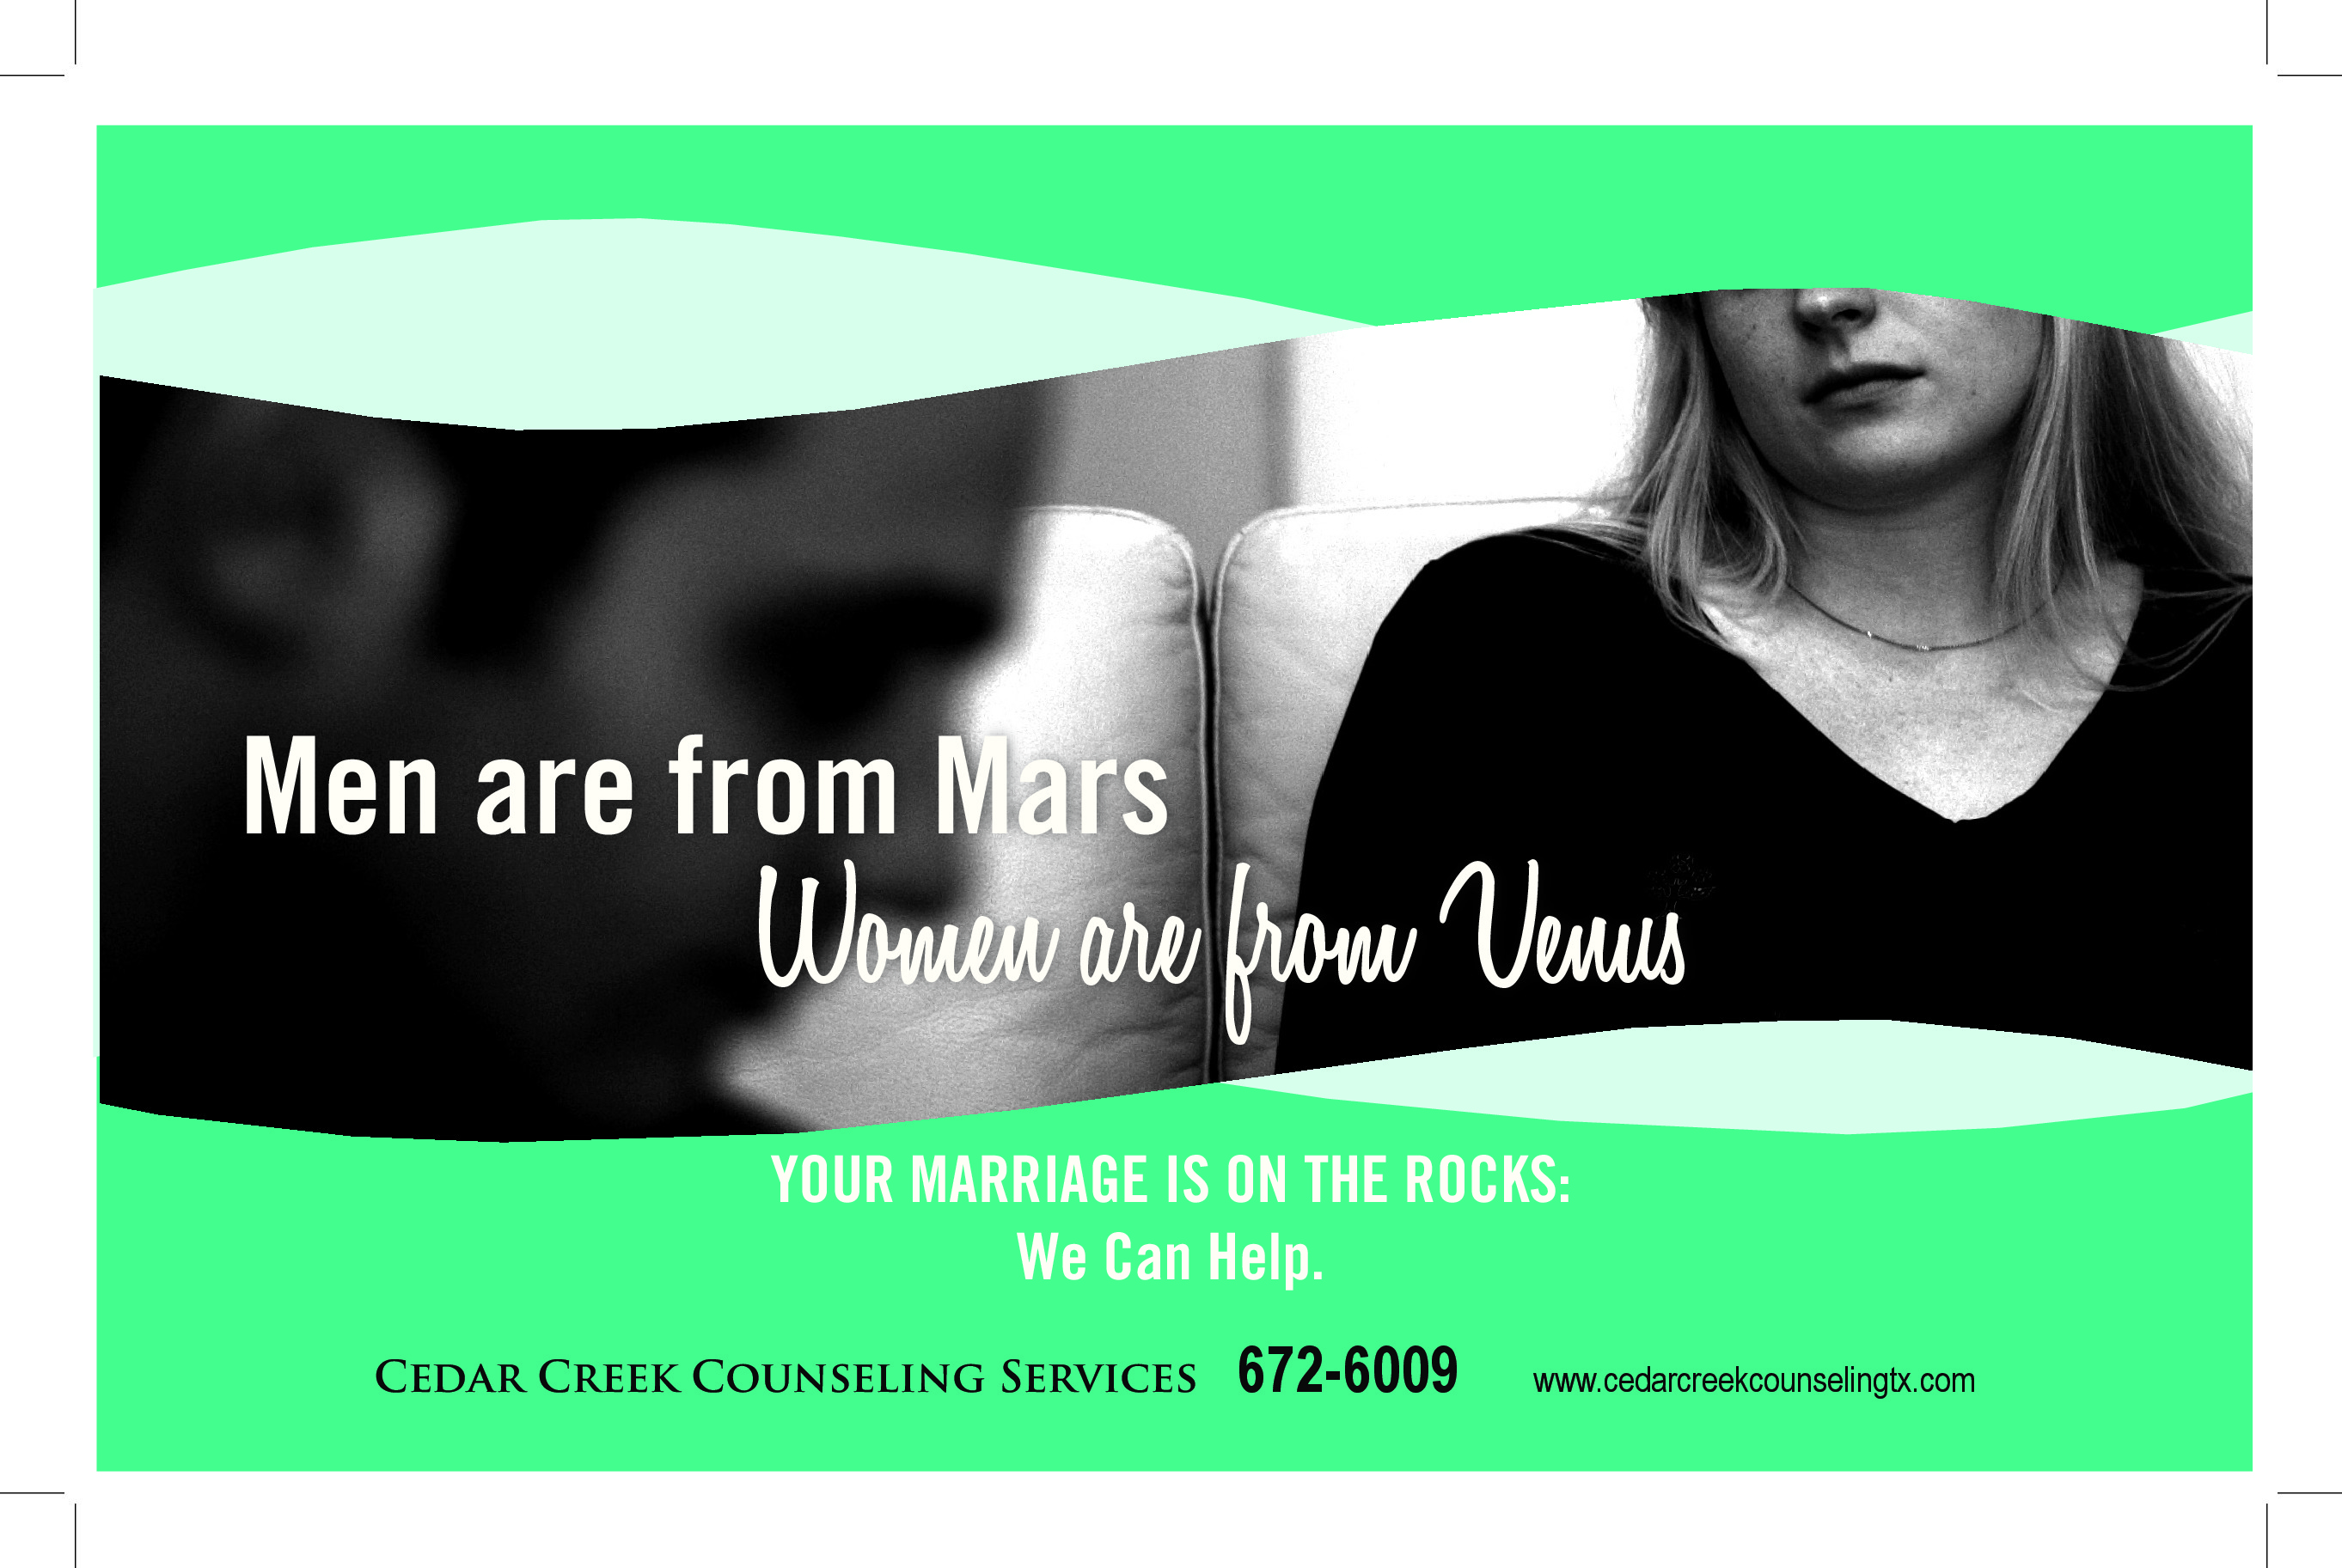 Cedar Creek Counseling Services Ad